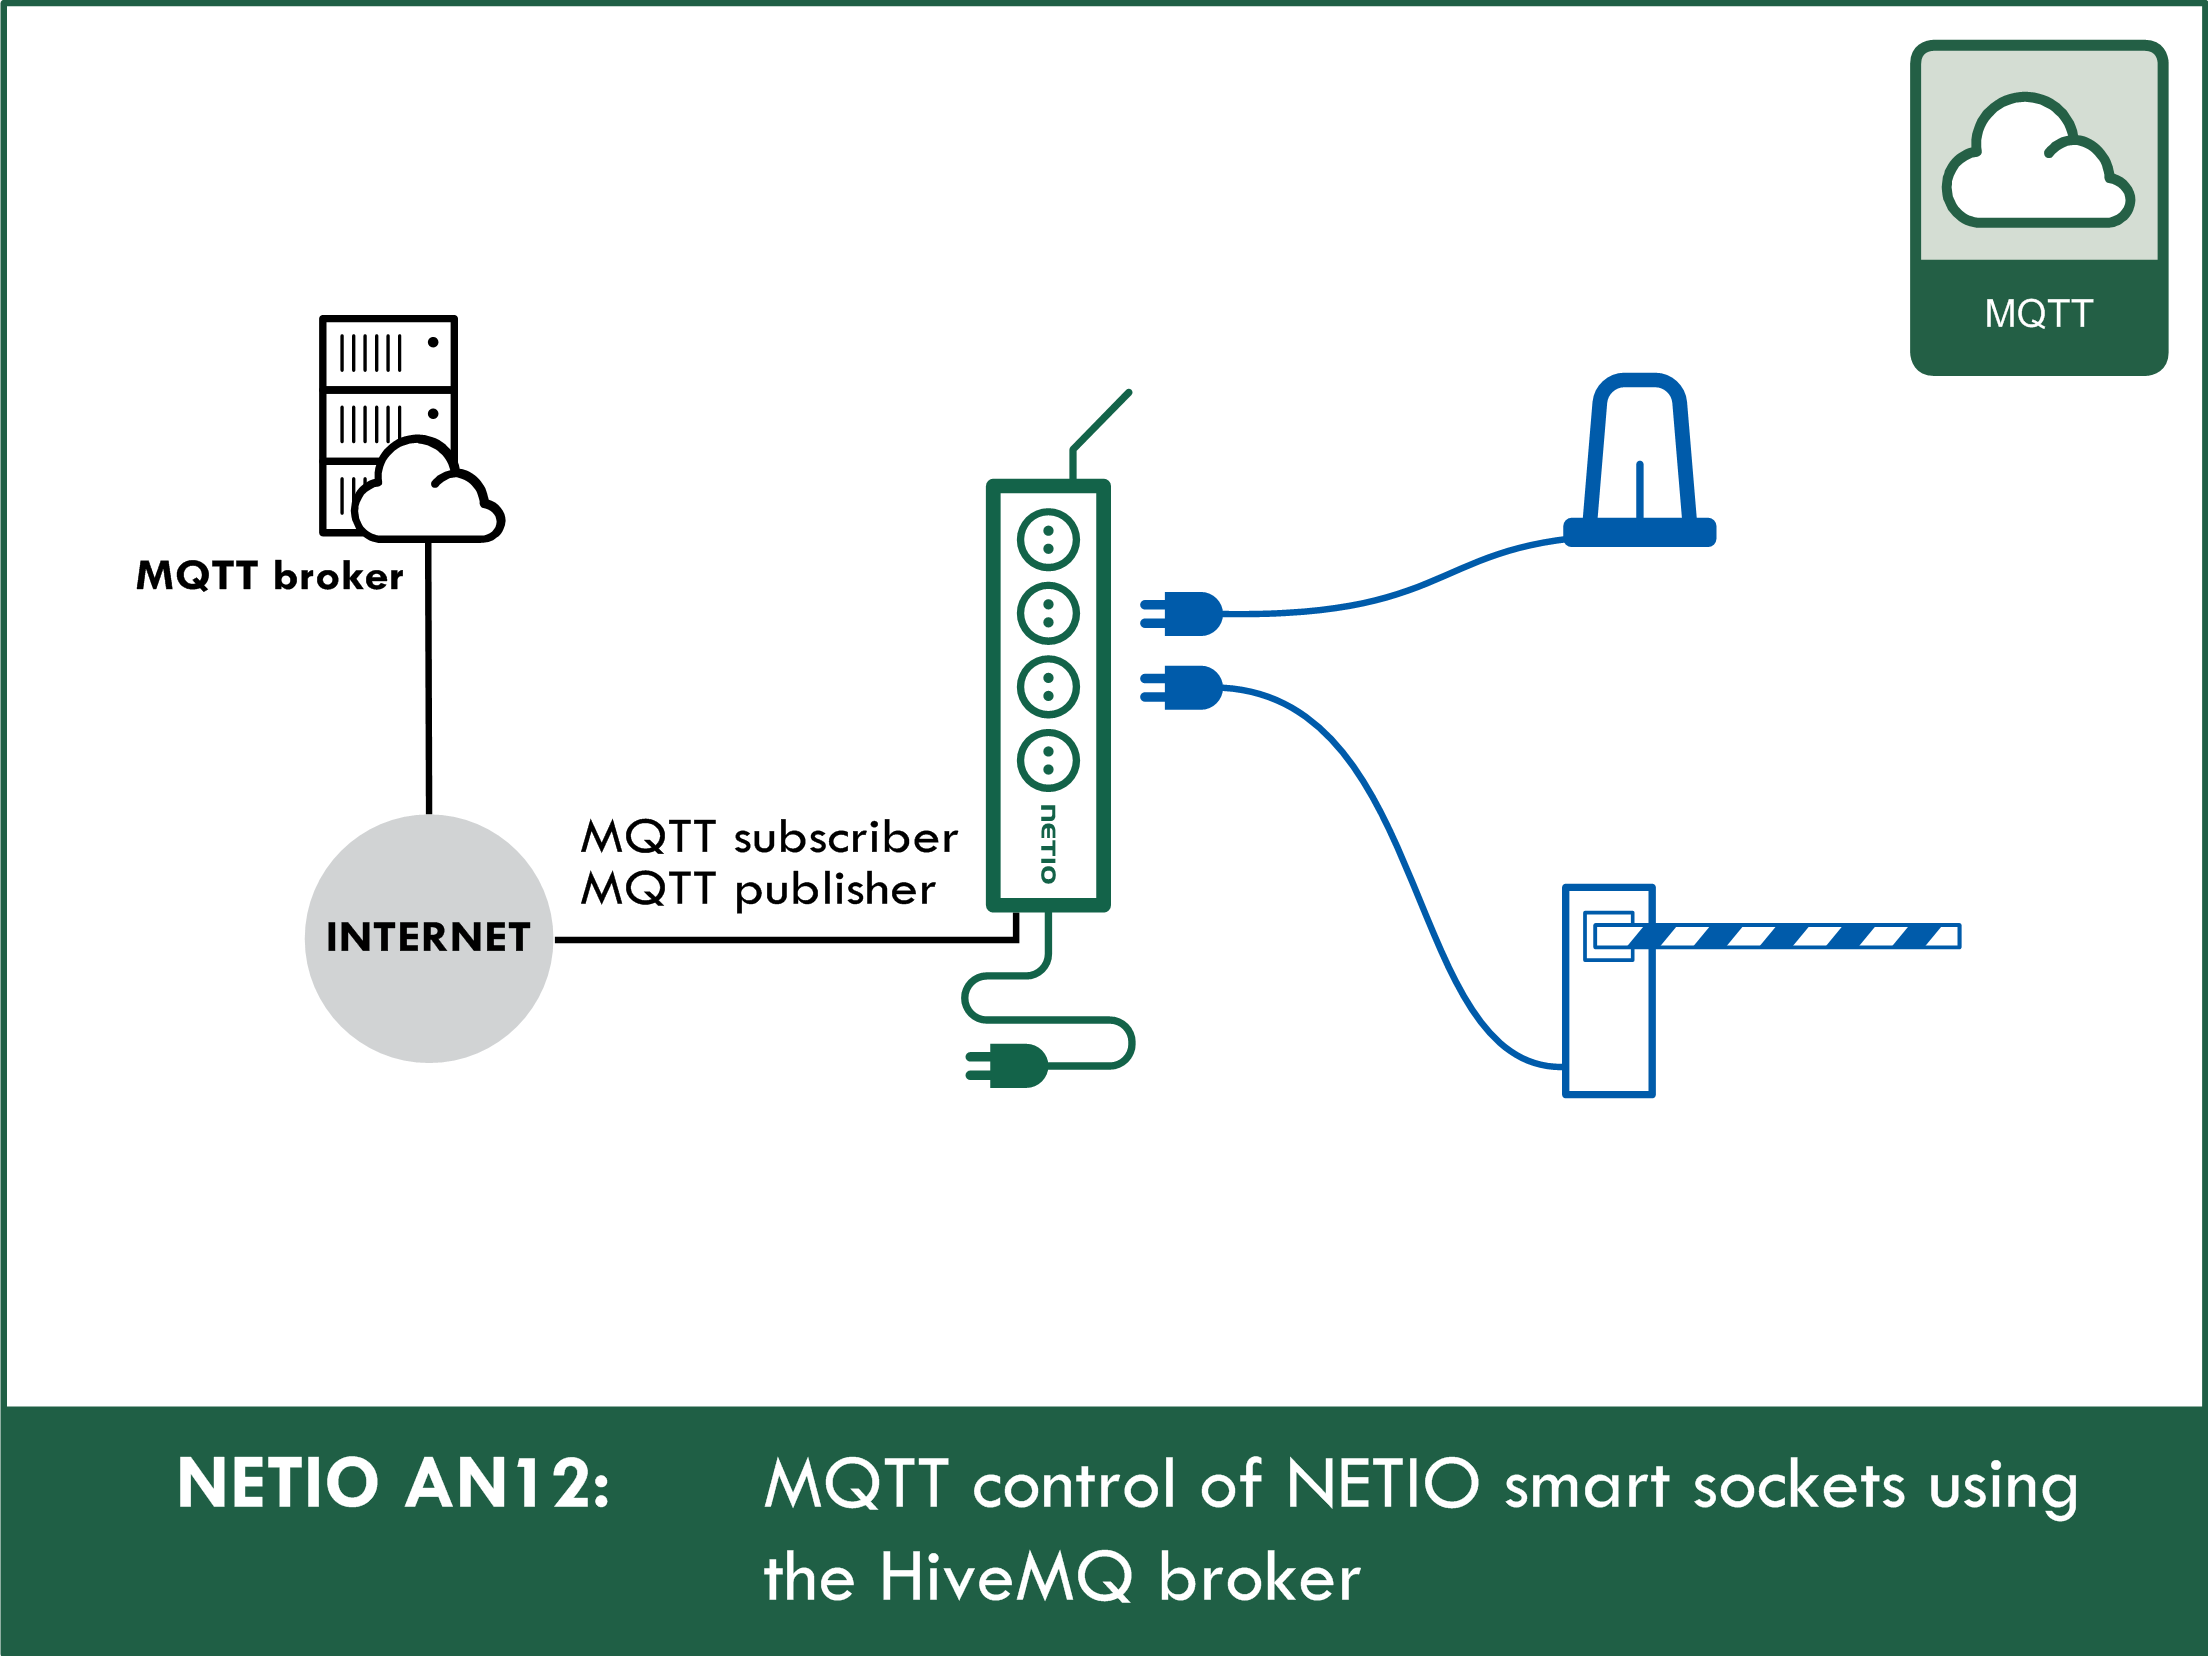 AN12 MQTT control of NETIO smart sockets using the HiveMQ